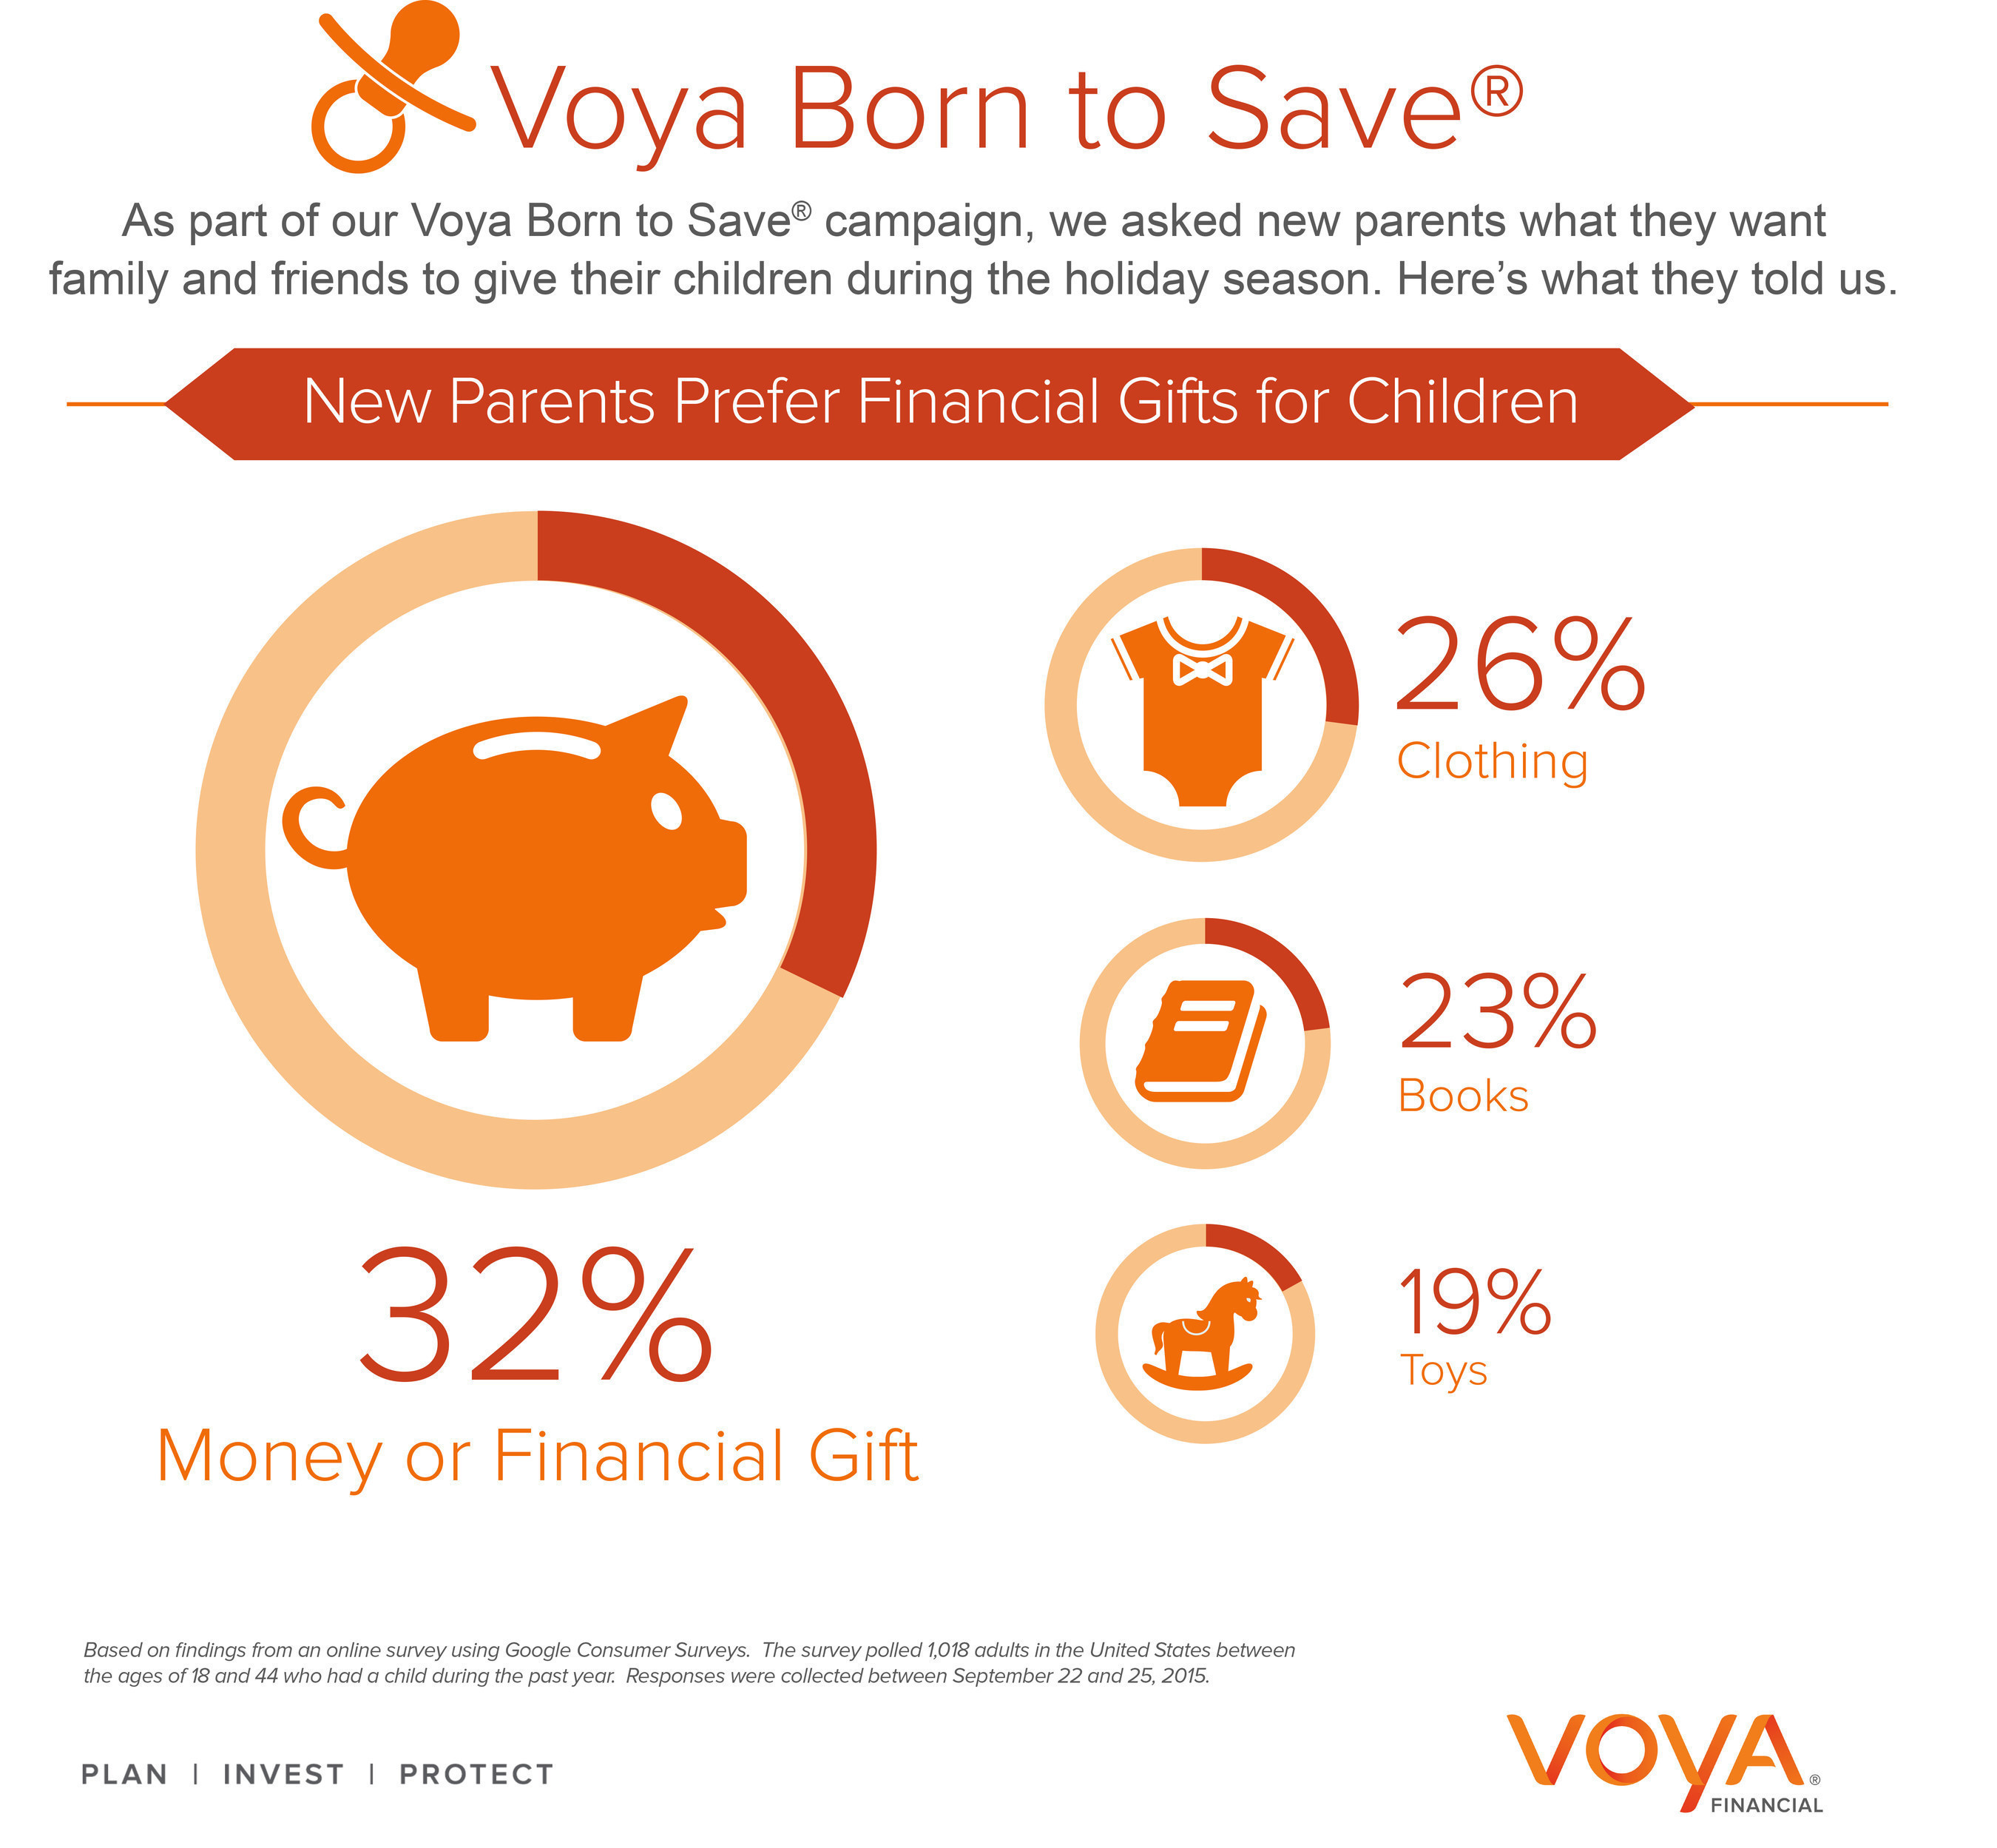 According to the Voya Born to Save(R) survey, nearly one-third (32%) of new parents hope their children will ...